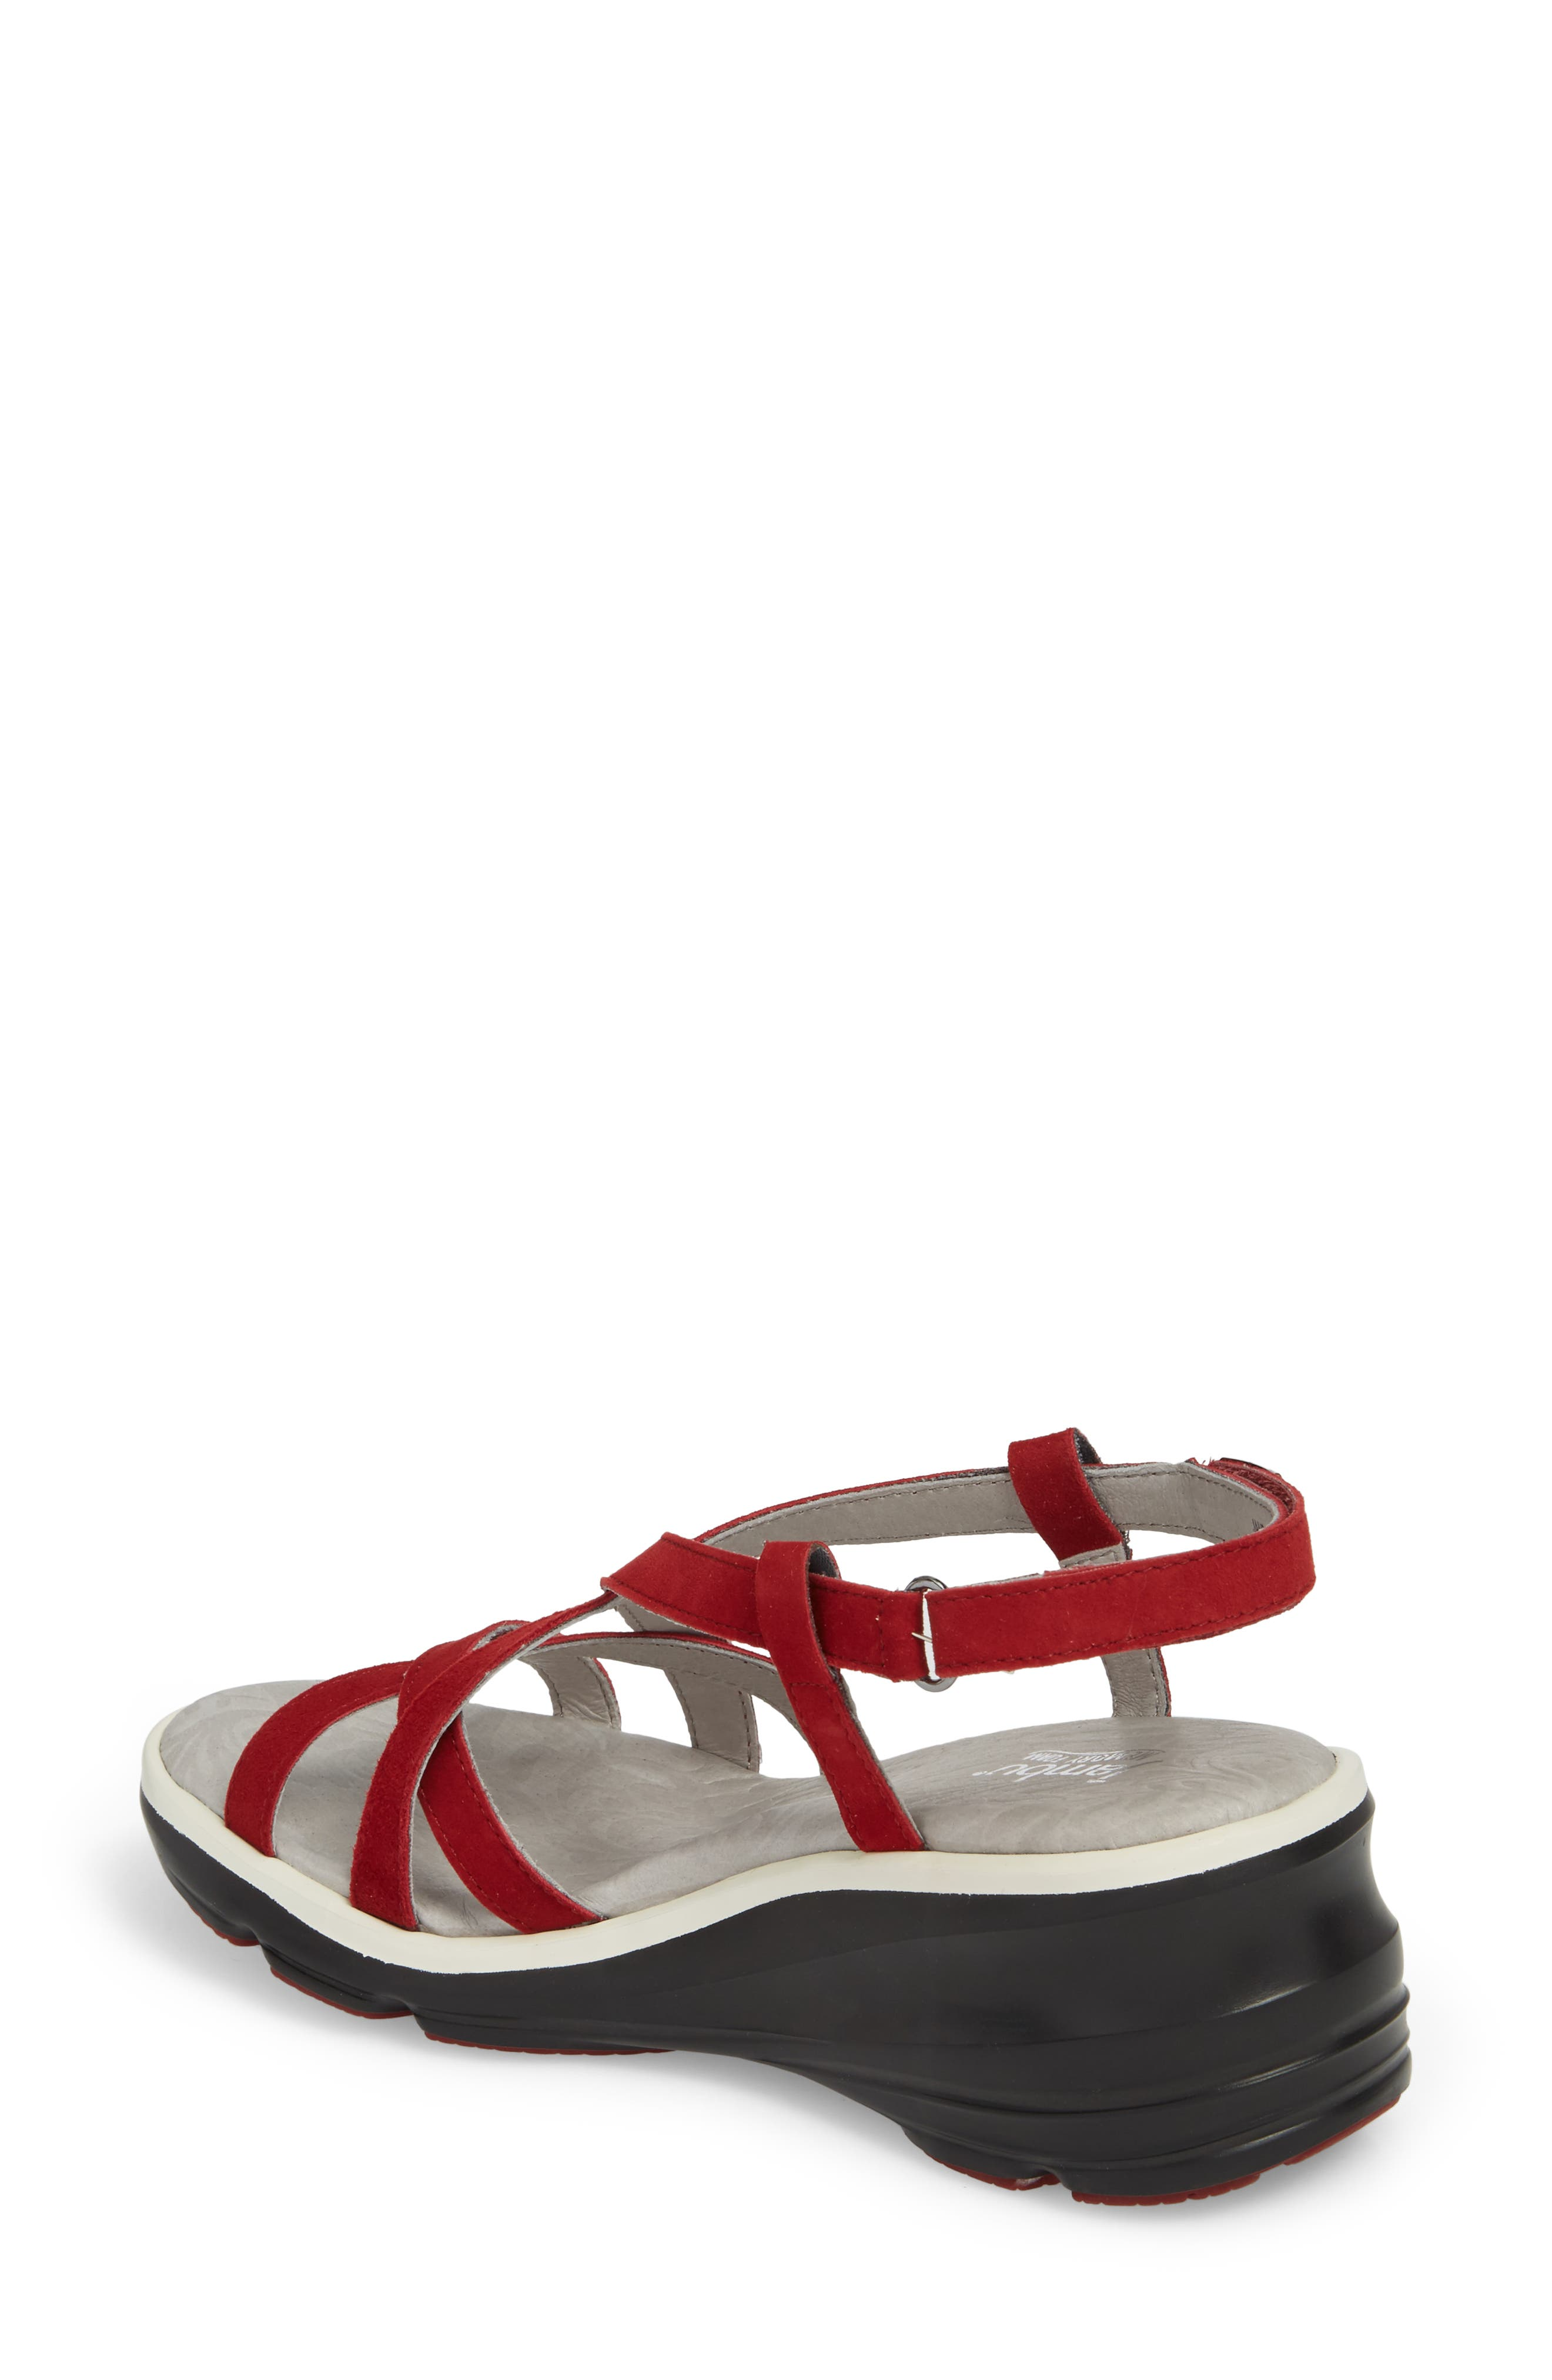 Ginger Wedge Sandal,                             Alternate thumbnail 2, color,                             Red Suede